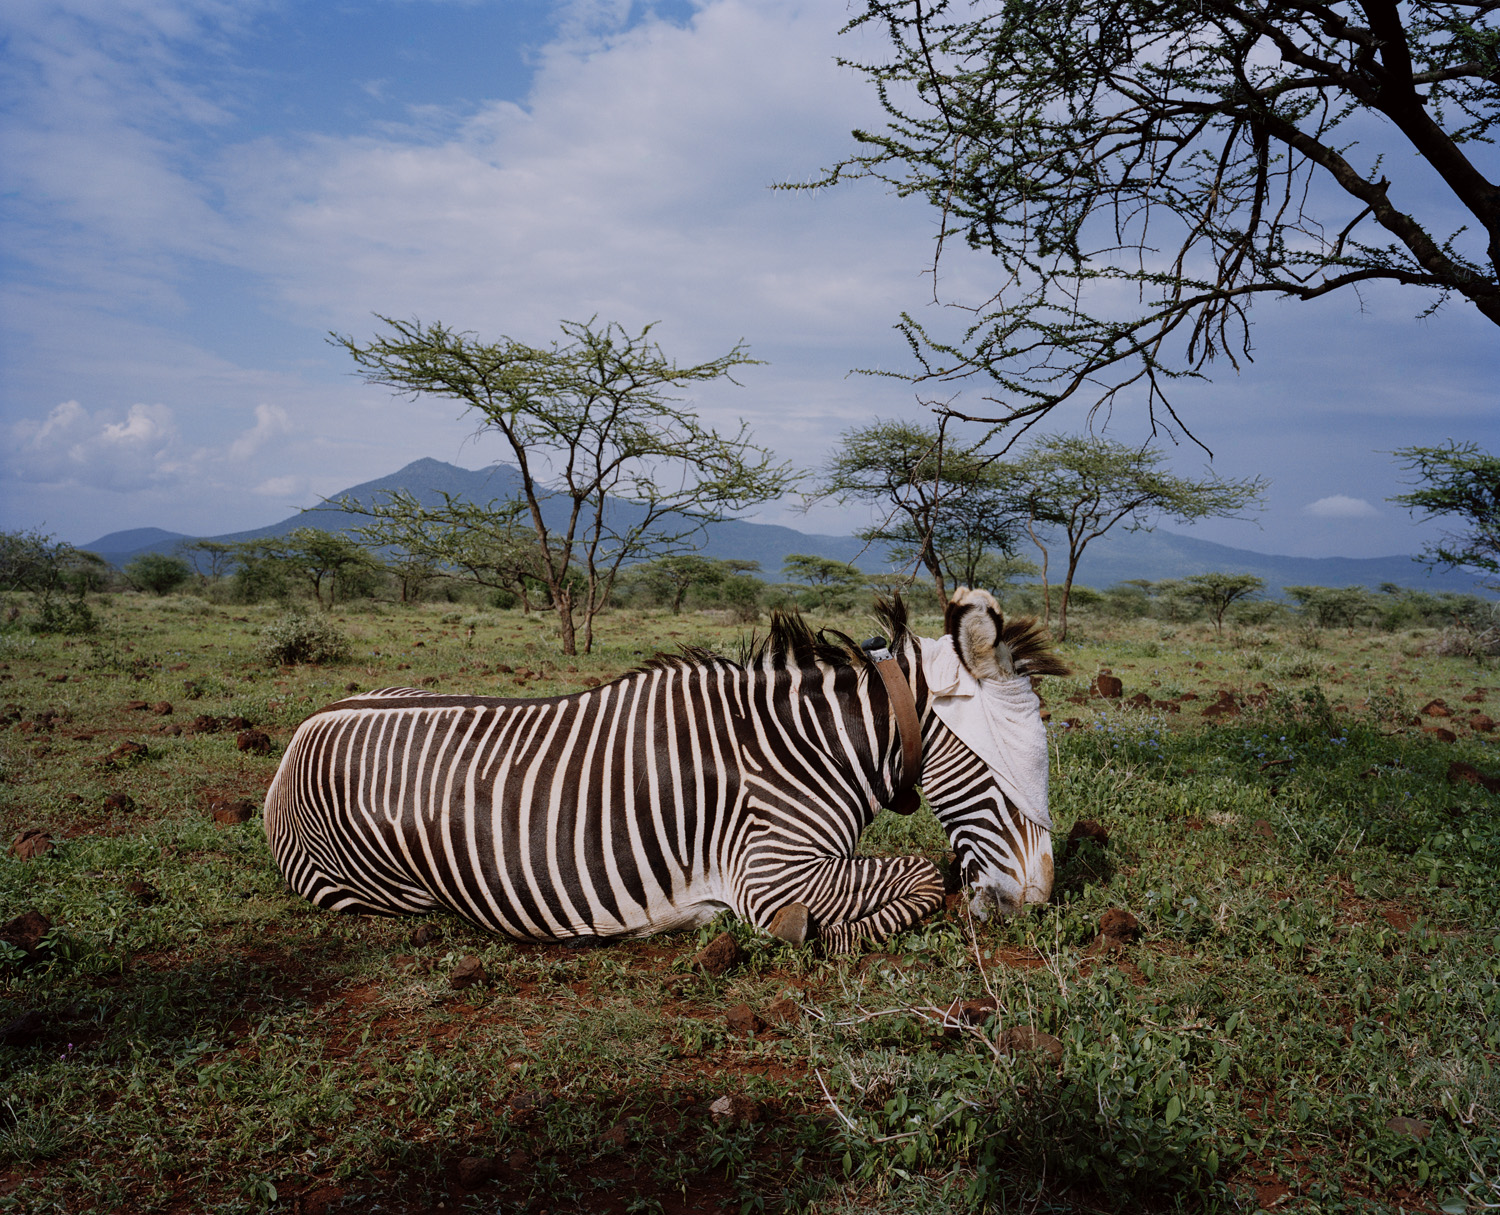 A sedated Grevy's zebra is fitted with a satellite transmitting collar at Lekurruki Community Conservancy, northern Kenya.                                                              Its movement will be monitored by scientists in the US. Over recent years the decline in the numbers of zebras -- 80% in the past three decades -- has been primarily due to poaching, killing for meat, and loss of access to critical resources due to competition with domestic livestock.